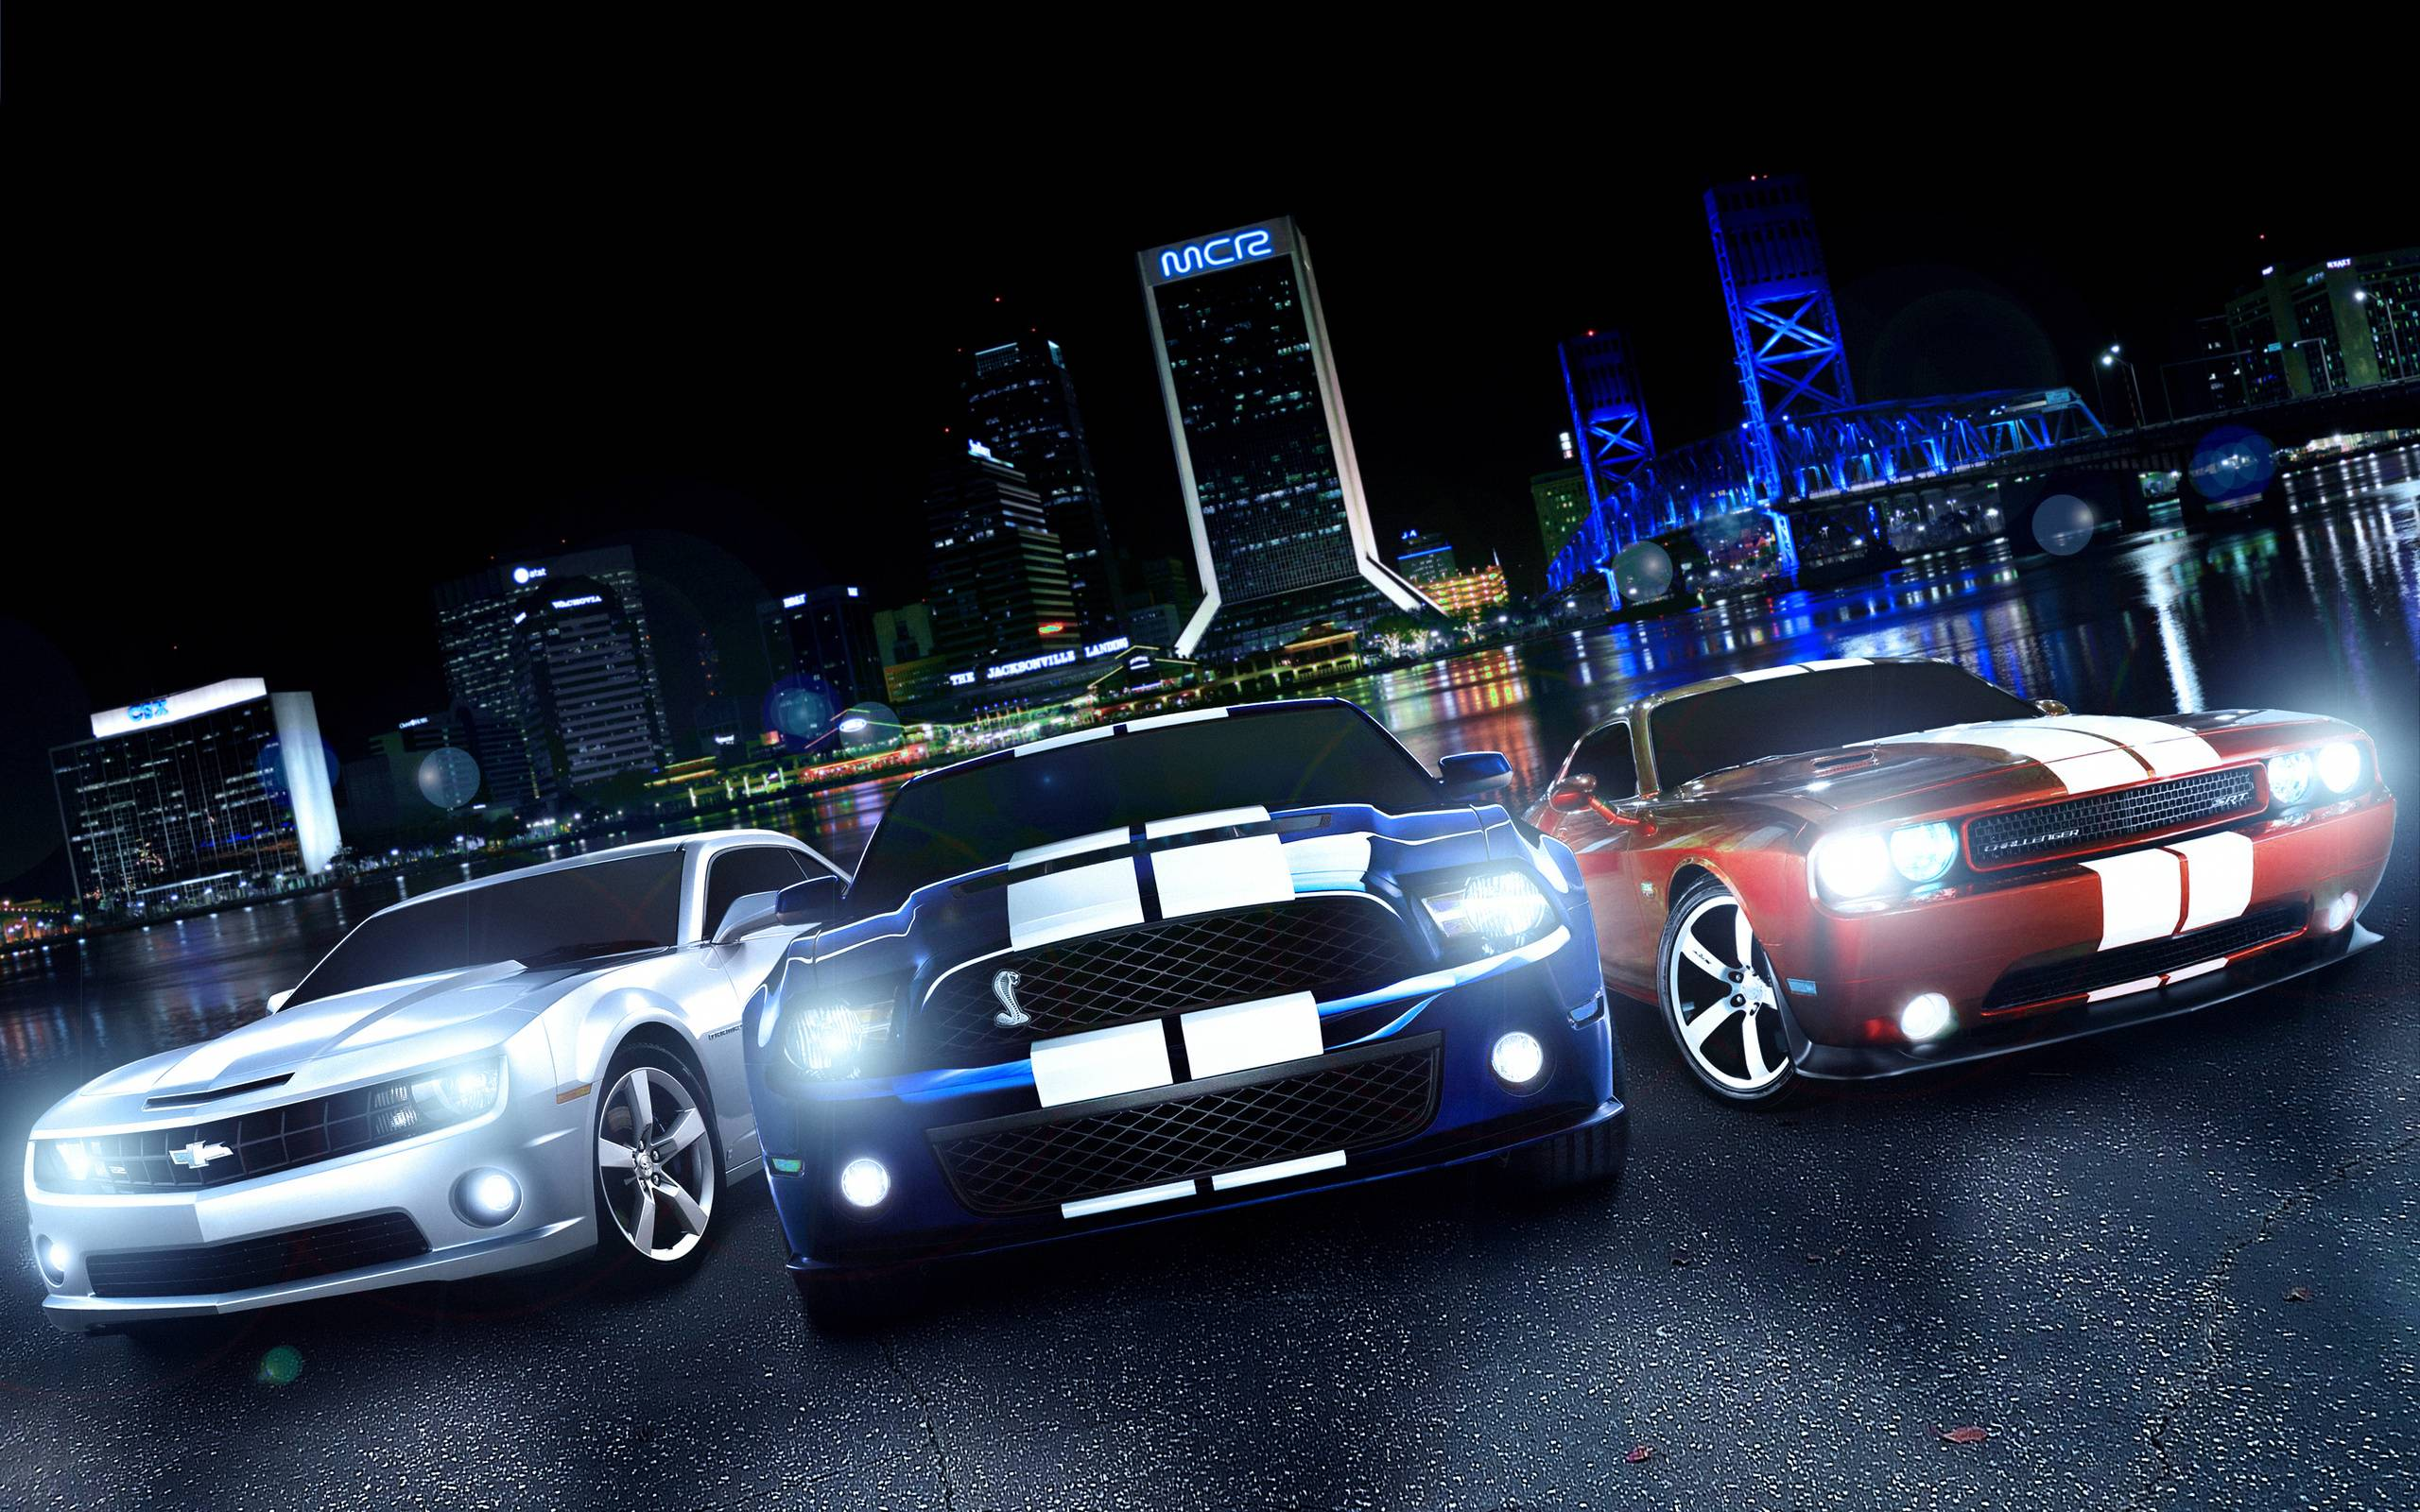 Cool Backgrounds Of Cars - Wallpaper Cave